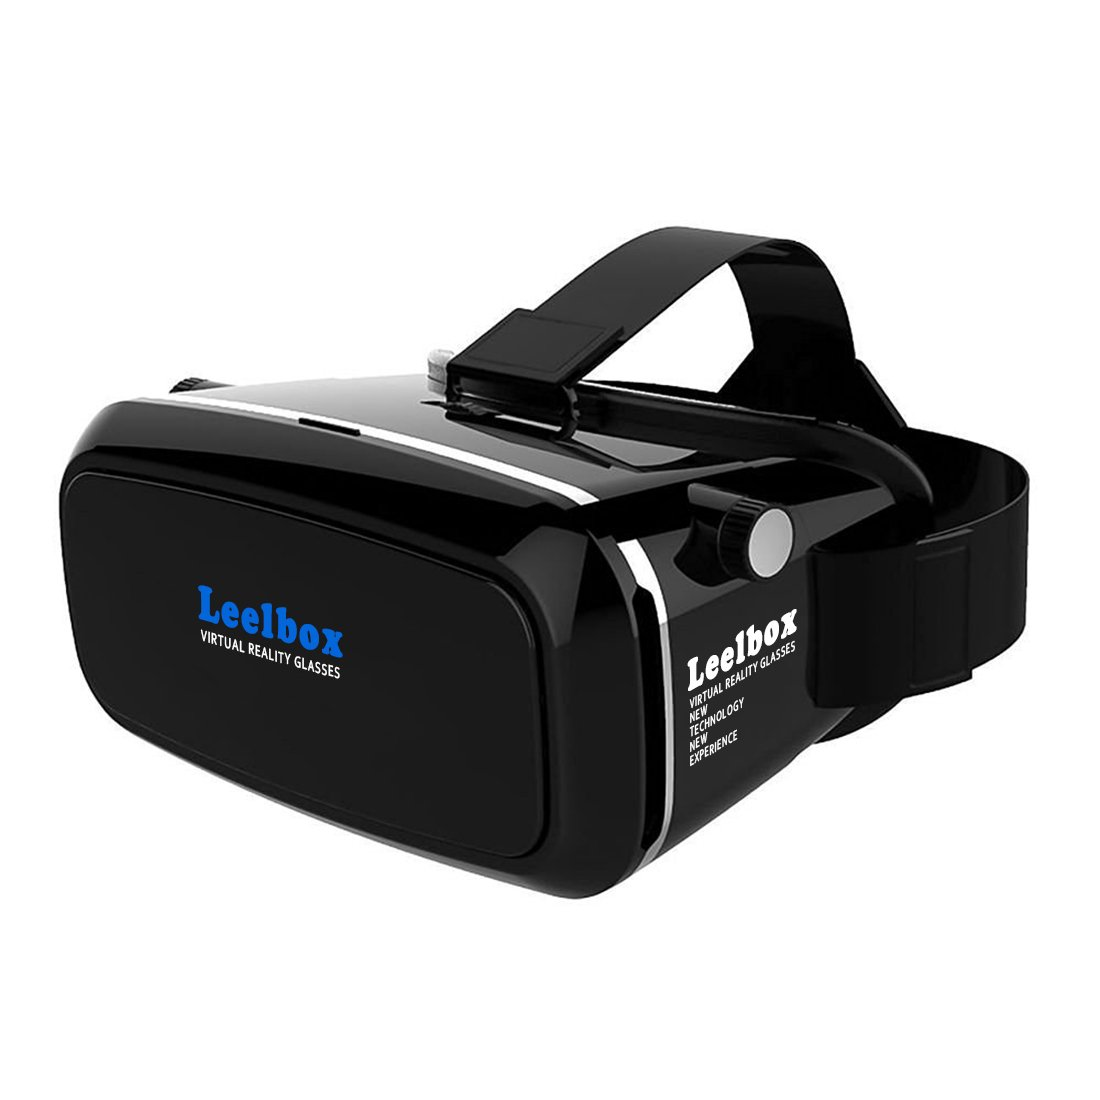 43e8fd82a71 Leelbox 3D VR Glasses Google Cardboard 360 degree Viewing Immersive Virtual  Reality 3D Video Games Glasses